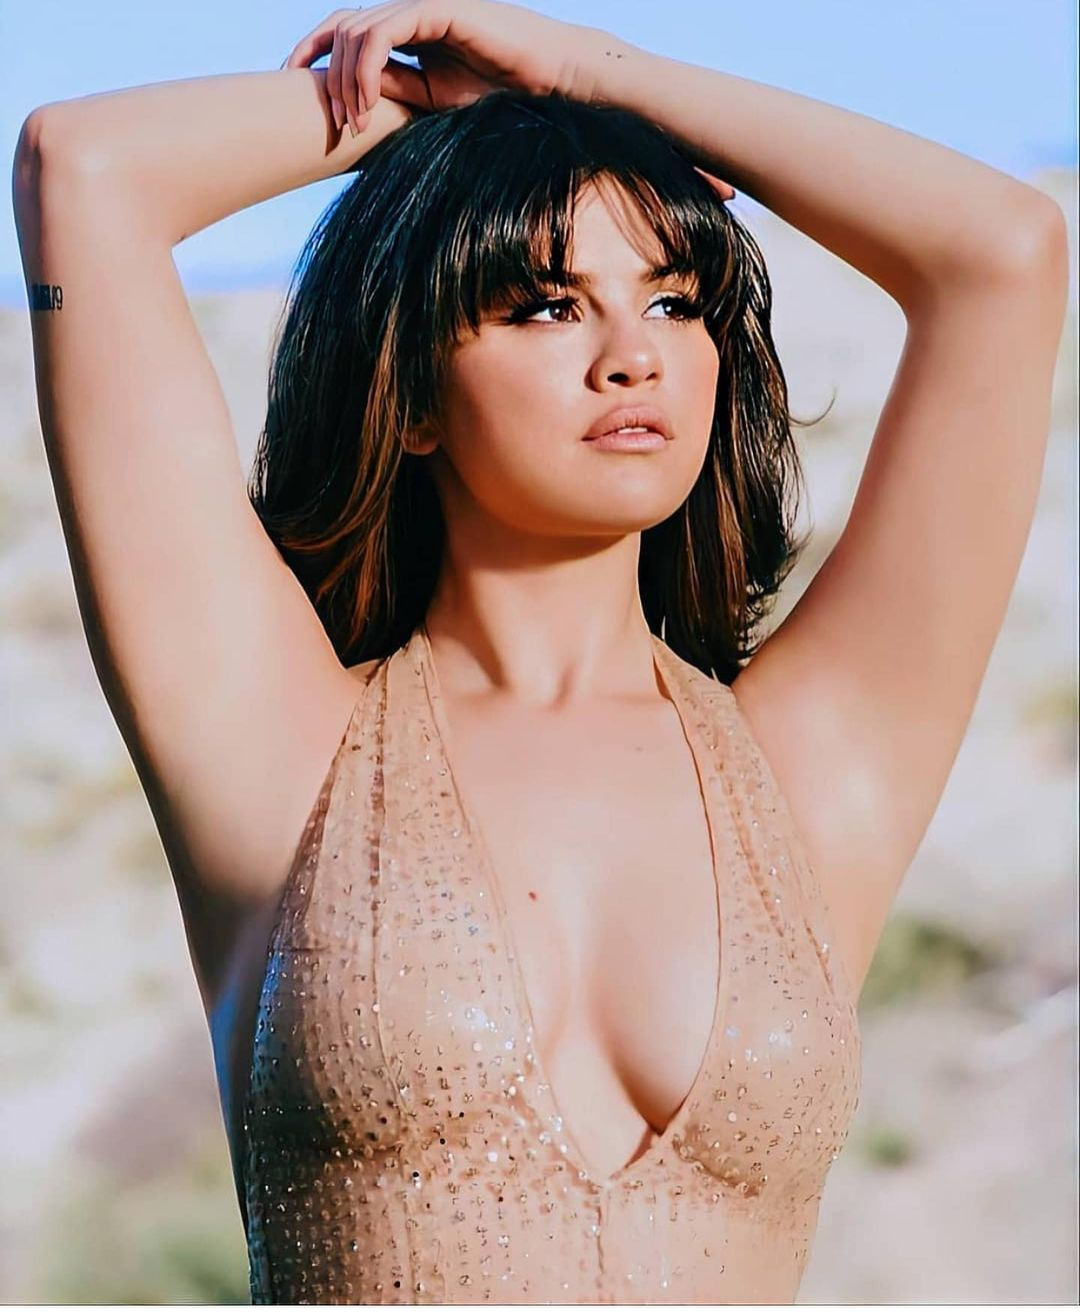 Why Is Selena Gomez So Hot & Sexy? Check Out Her Viral Pictures